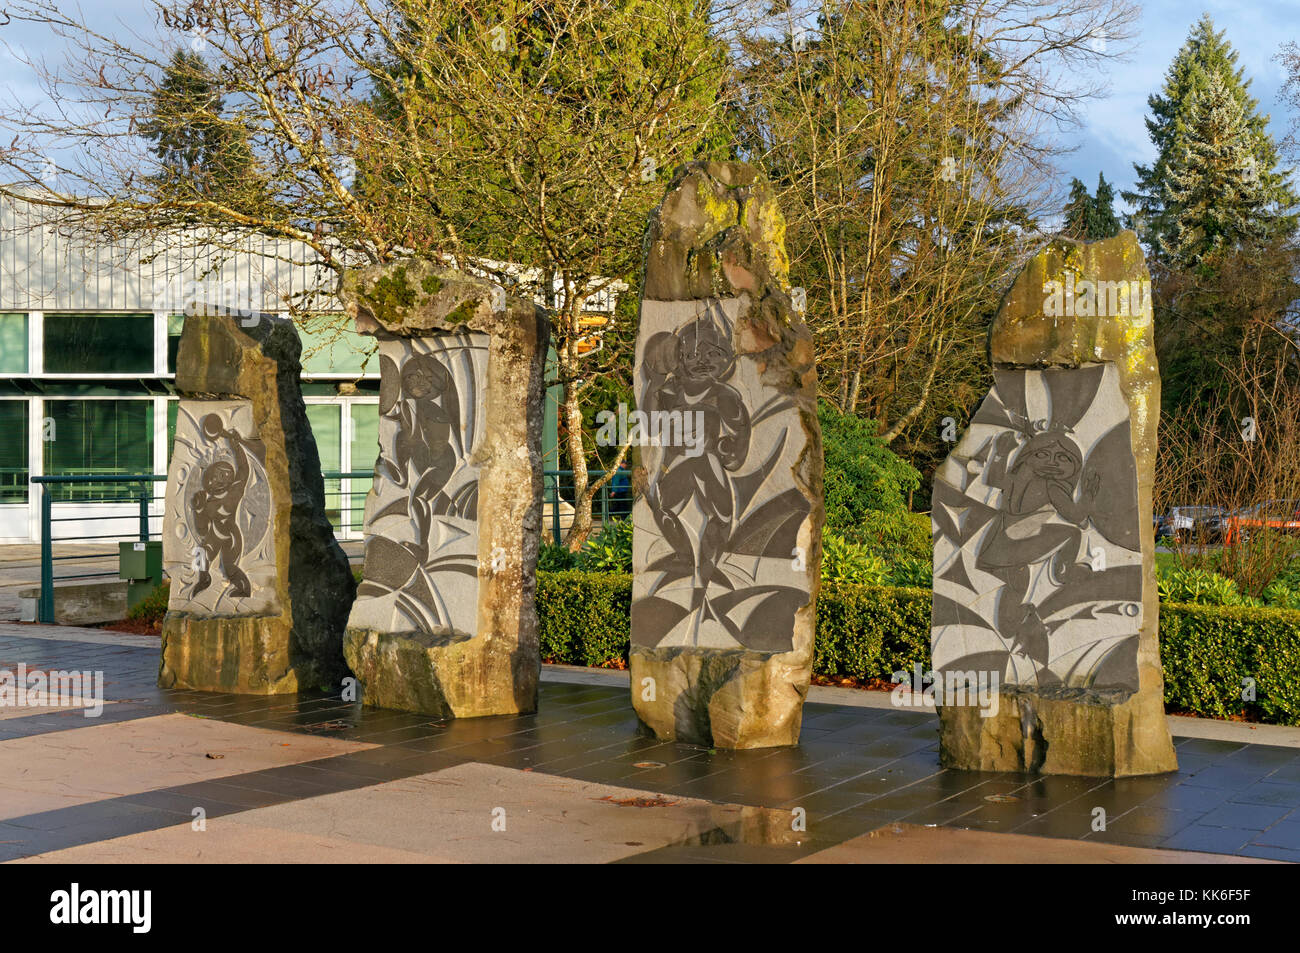 Contemporary First Nations stone sculptures by Thomas Cannell in Spirit Square, Jack Shadbolt Centre for the Arts, Stock Photo